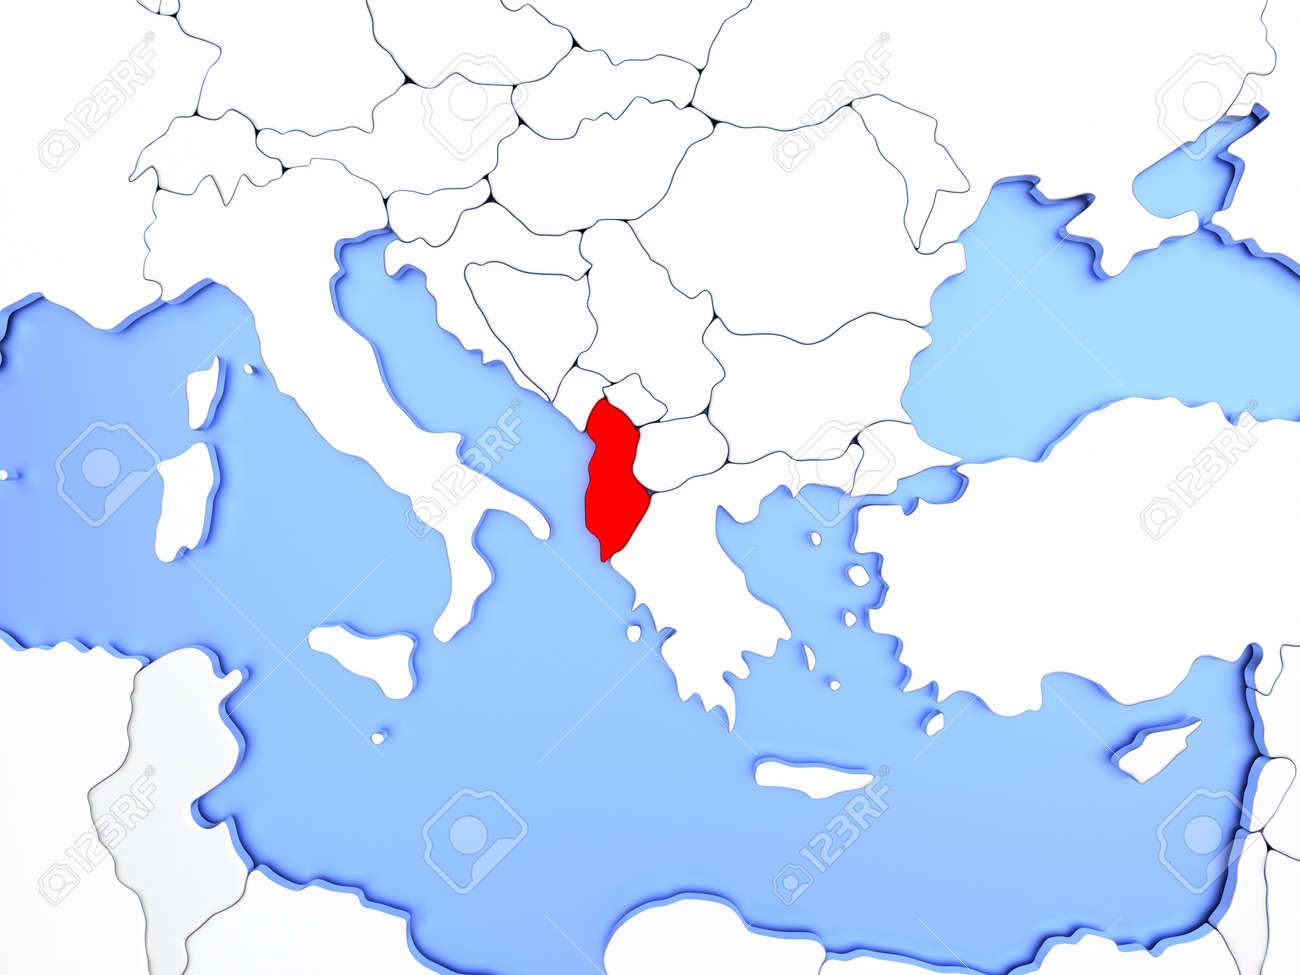 World Map Blank With Countries Border. Map Of Albania Highlighted In Red On Simple Shiny Metallic  Country borders map World Blank With Countries Border New